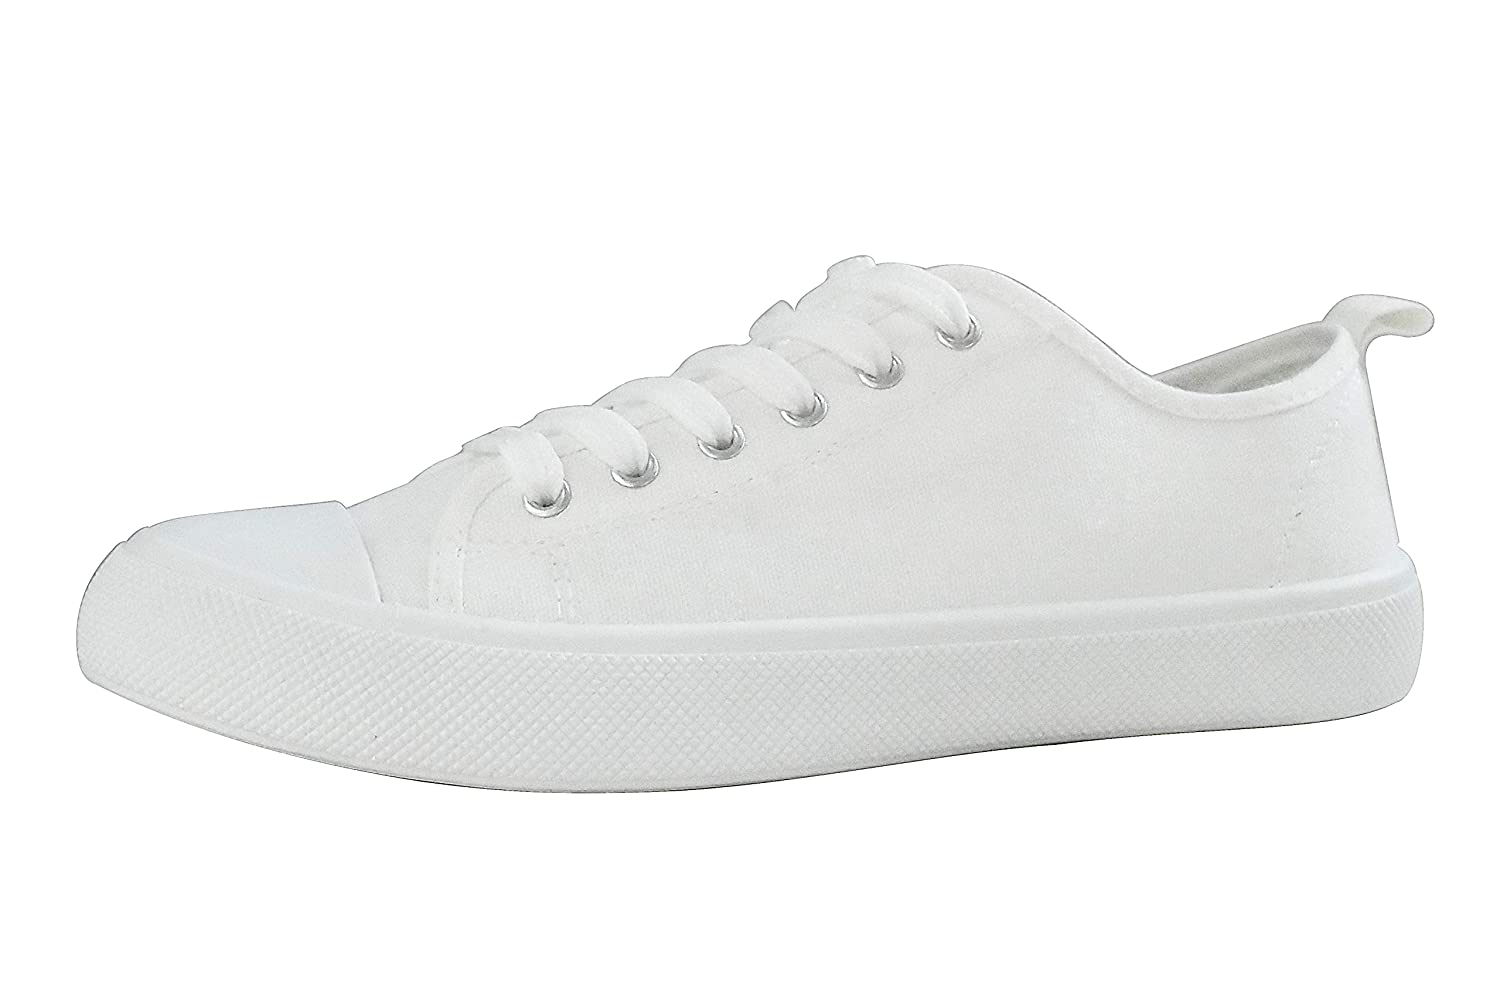 Buy LUCKY STEP Women Canvas Shoes Low